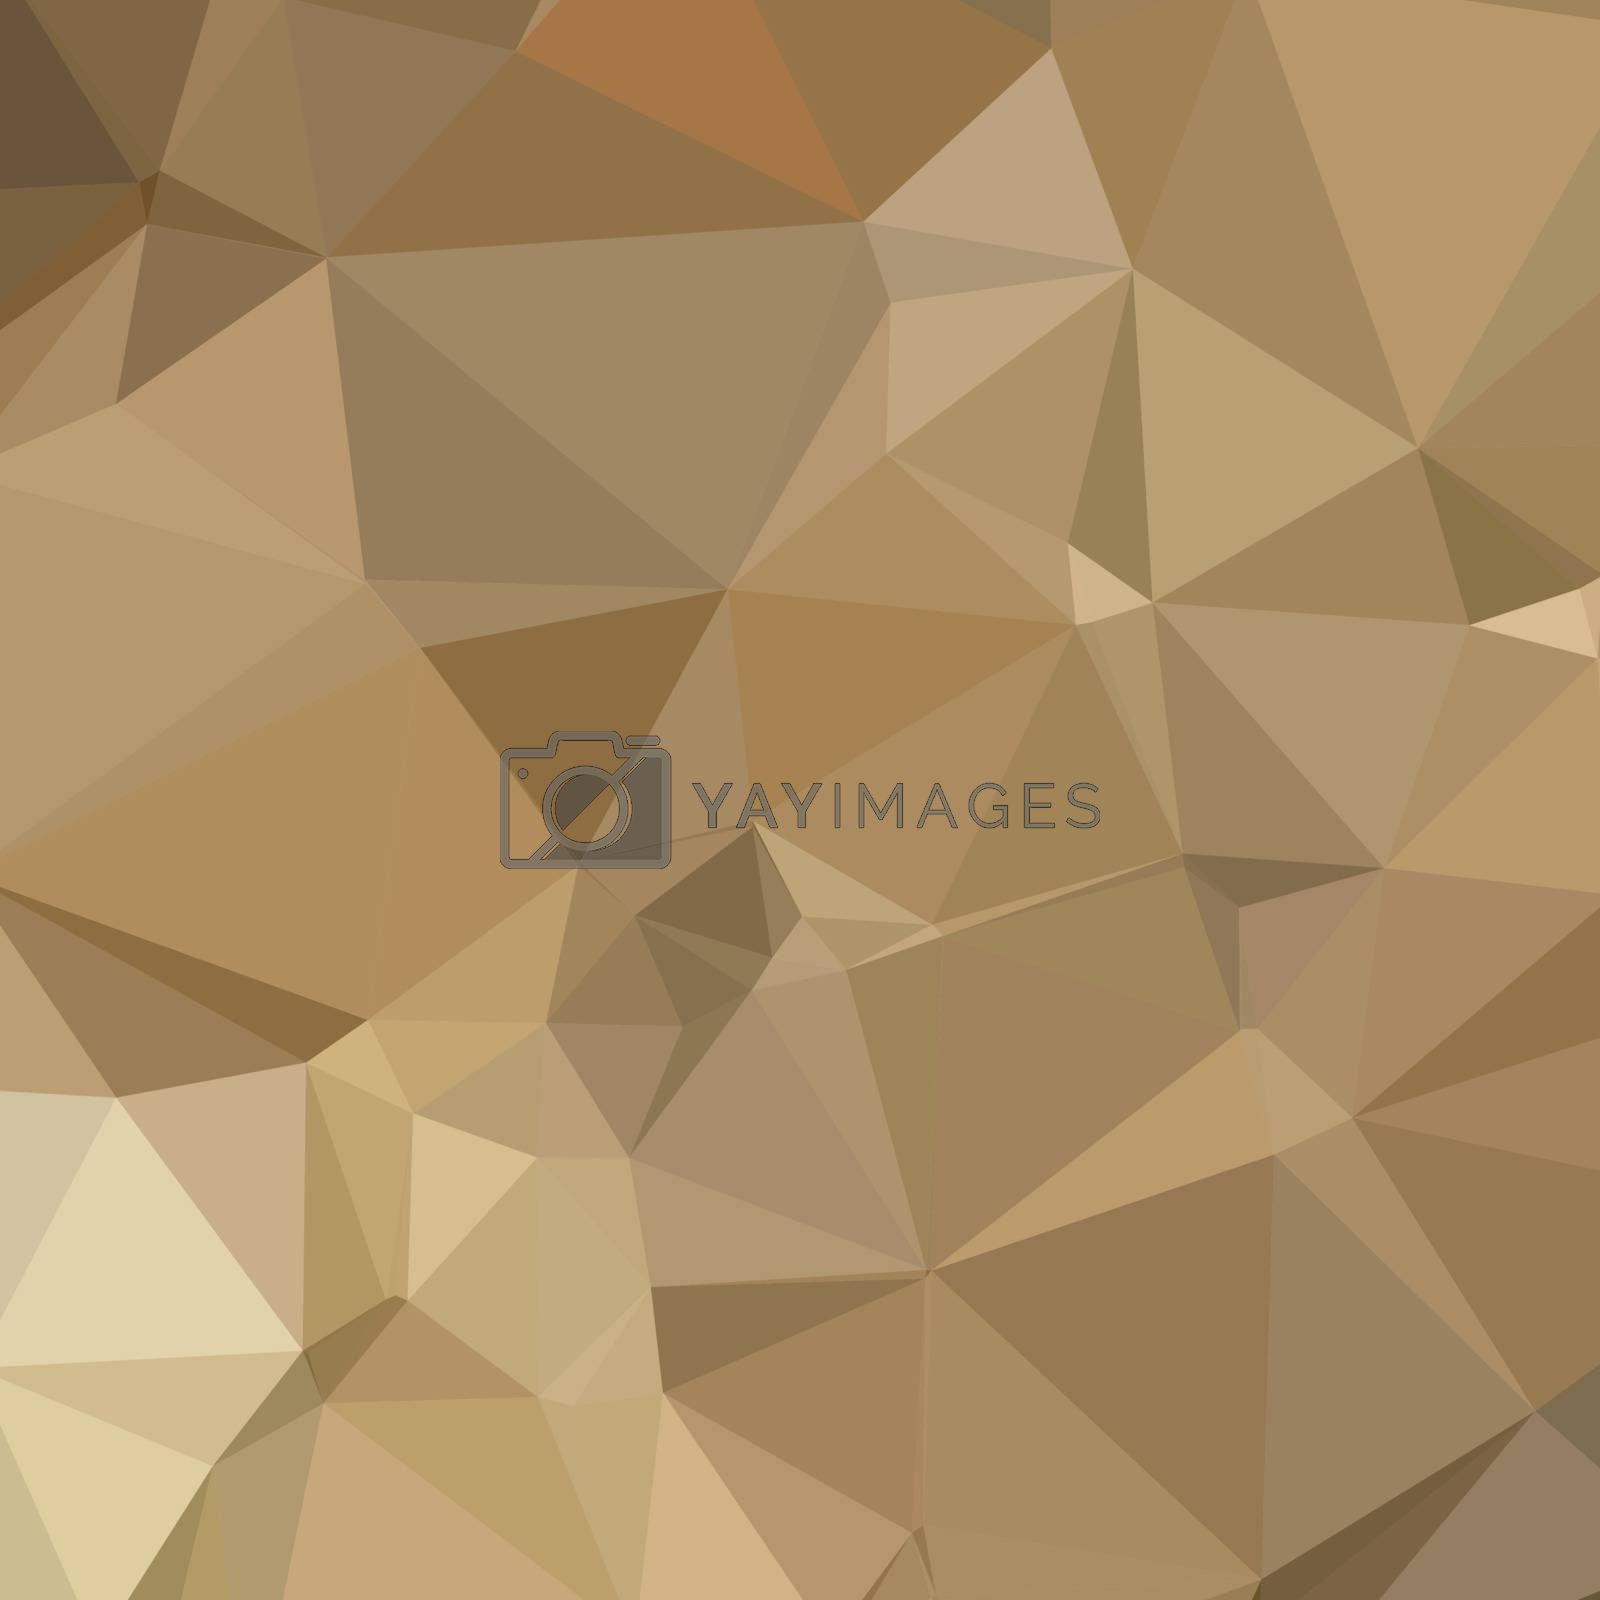 Low polygon style illustration of burlywood brown abstract geometric background.